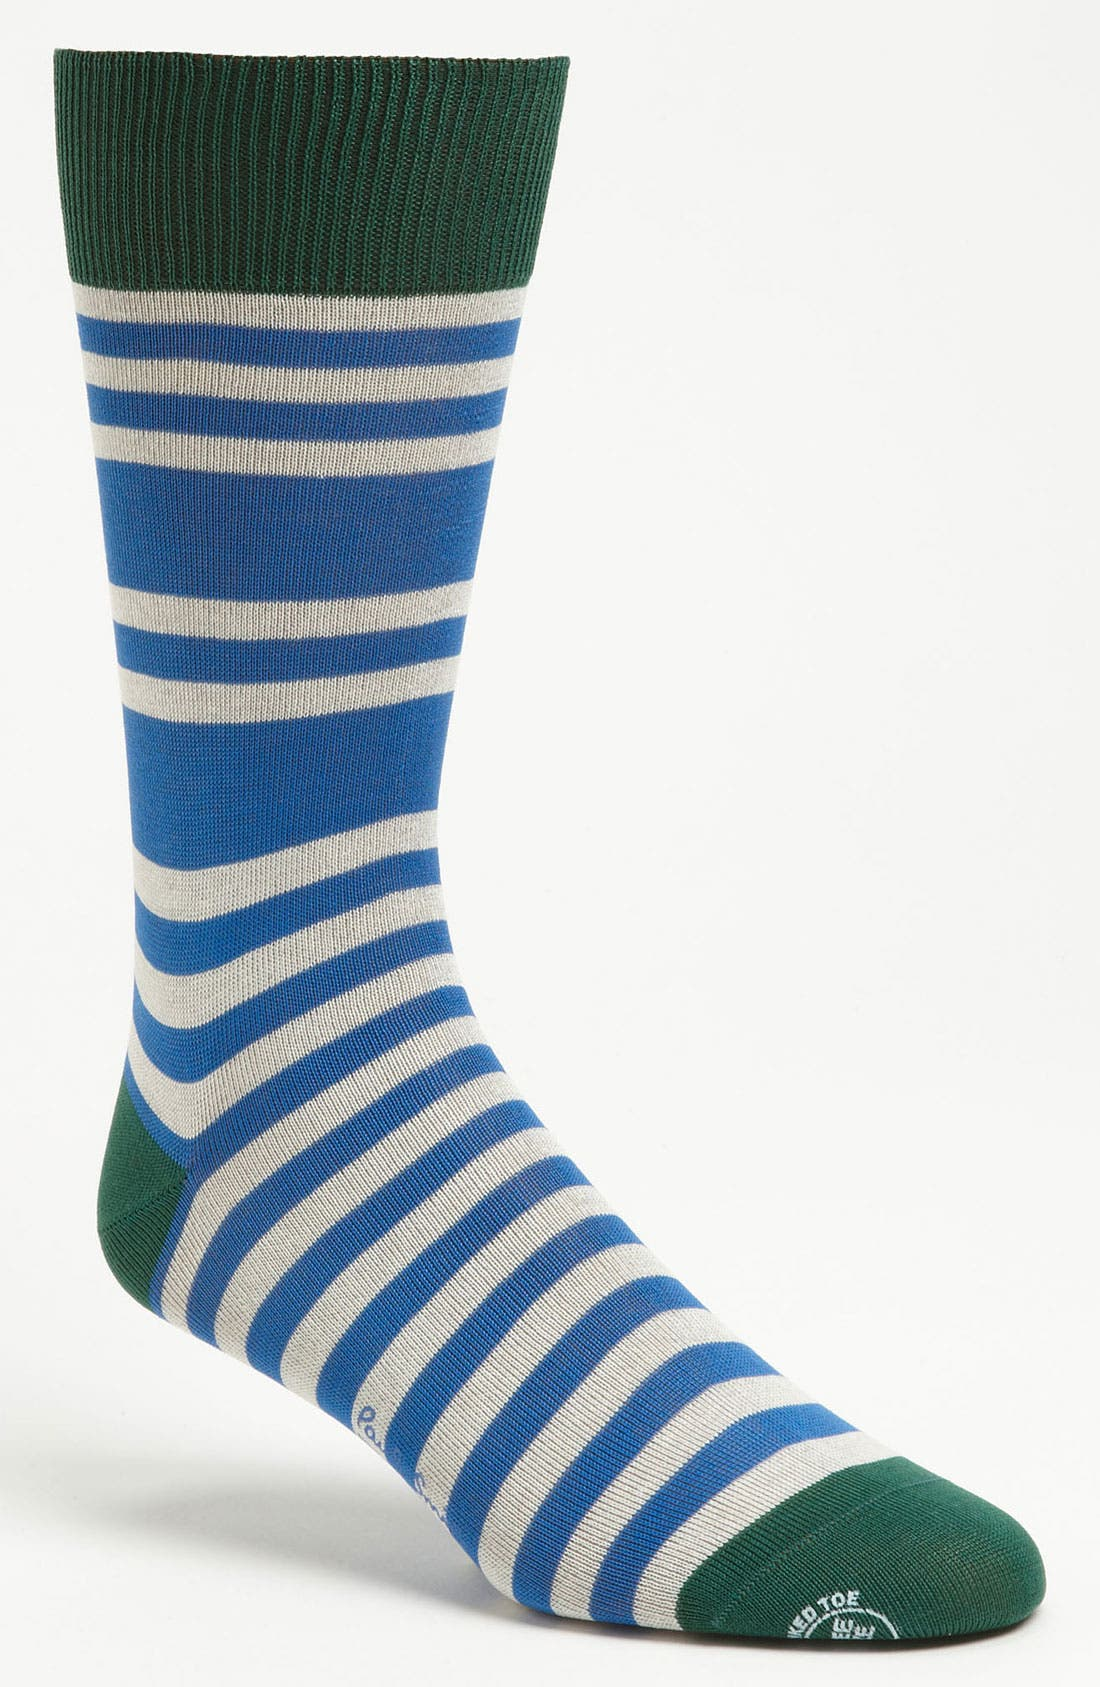 Alternate Image 1 Selected - Paul Smith Accessories 'Odd Bizmark' Socks